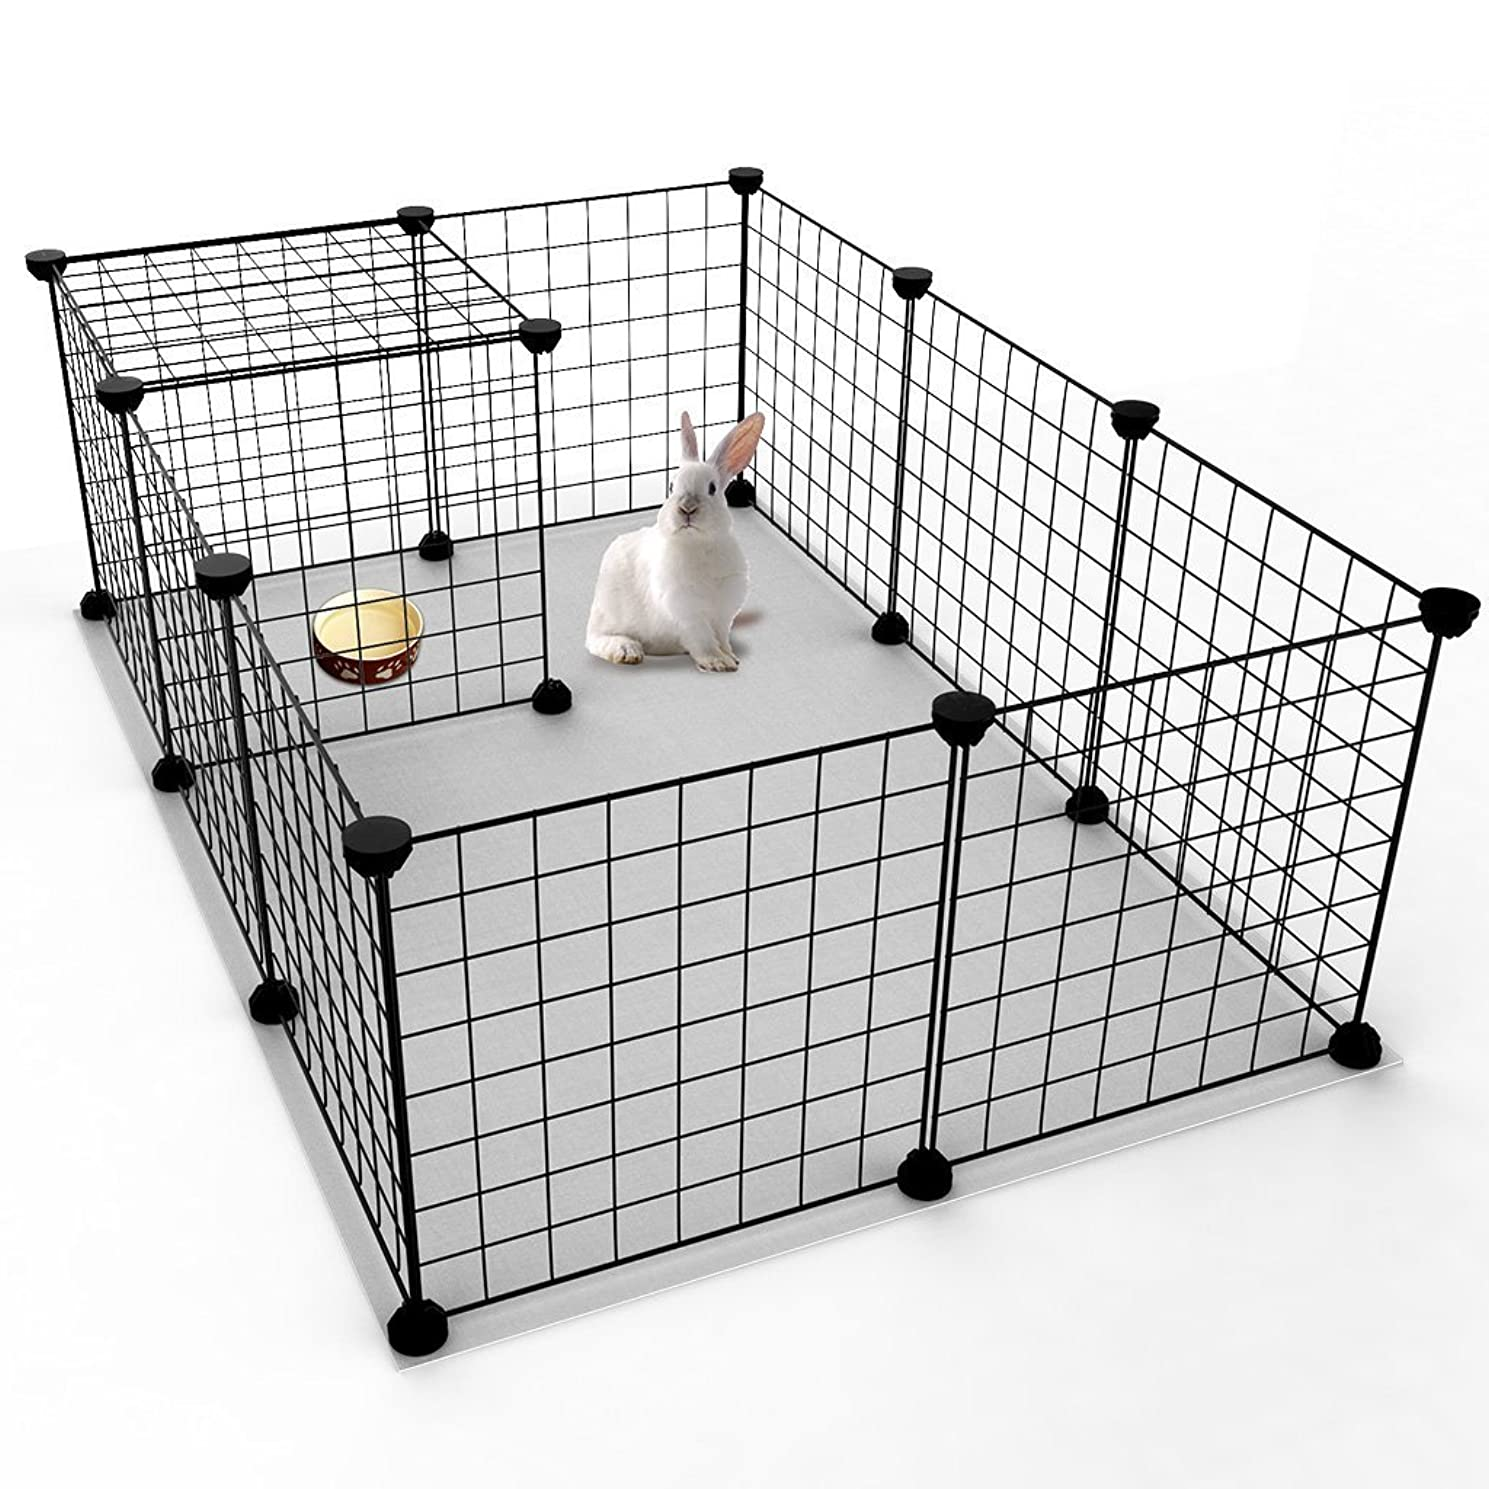 JYYG Small Pet Pen Bunny Cage Dogs Playpen Indoor Out Door Animal Fence Puppy Guinea Pigs, Dwarf Rabbits (12 Panels, Black)